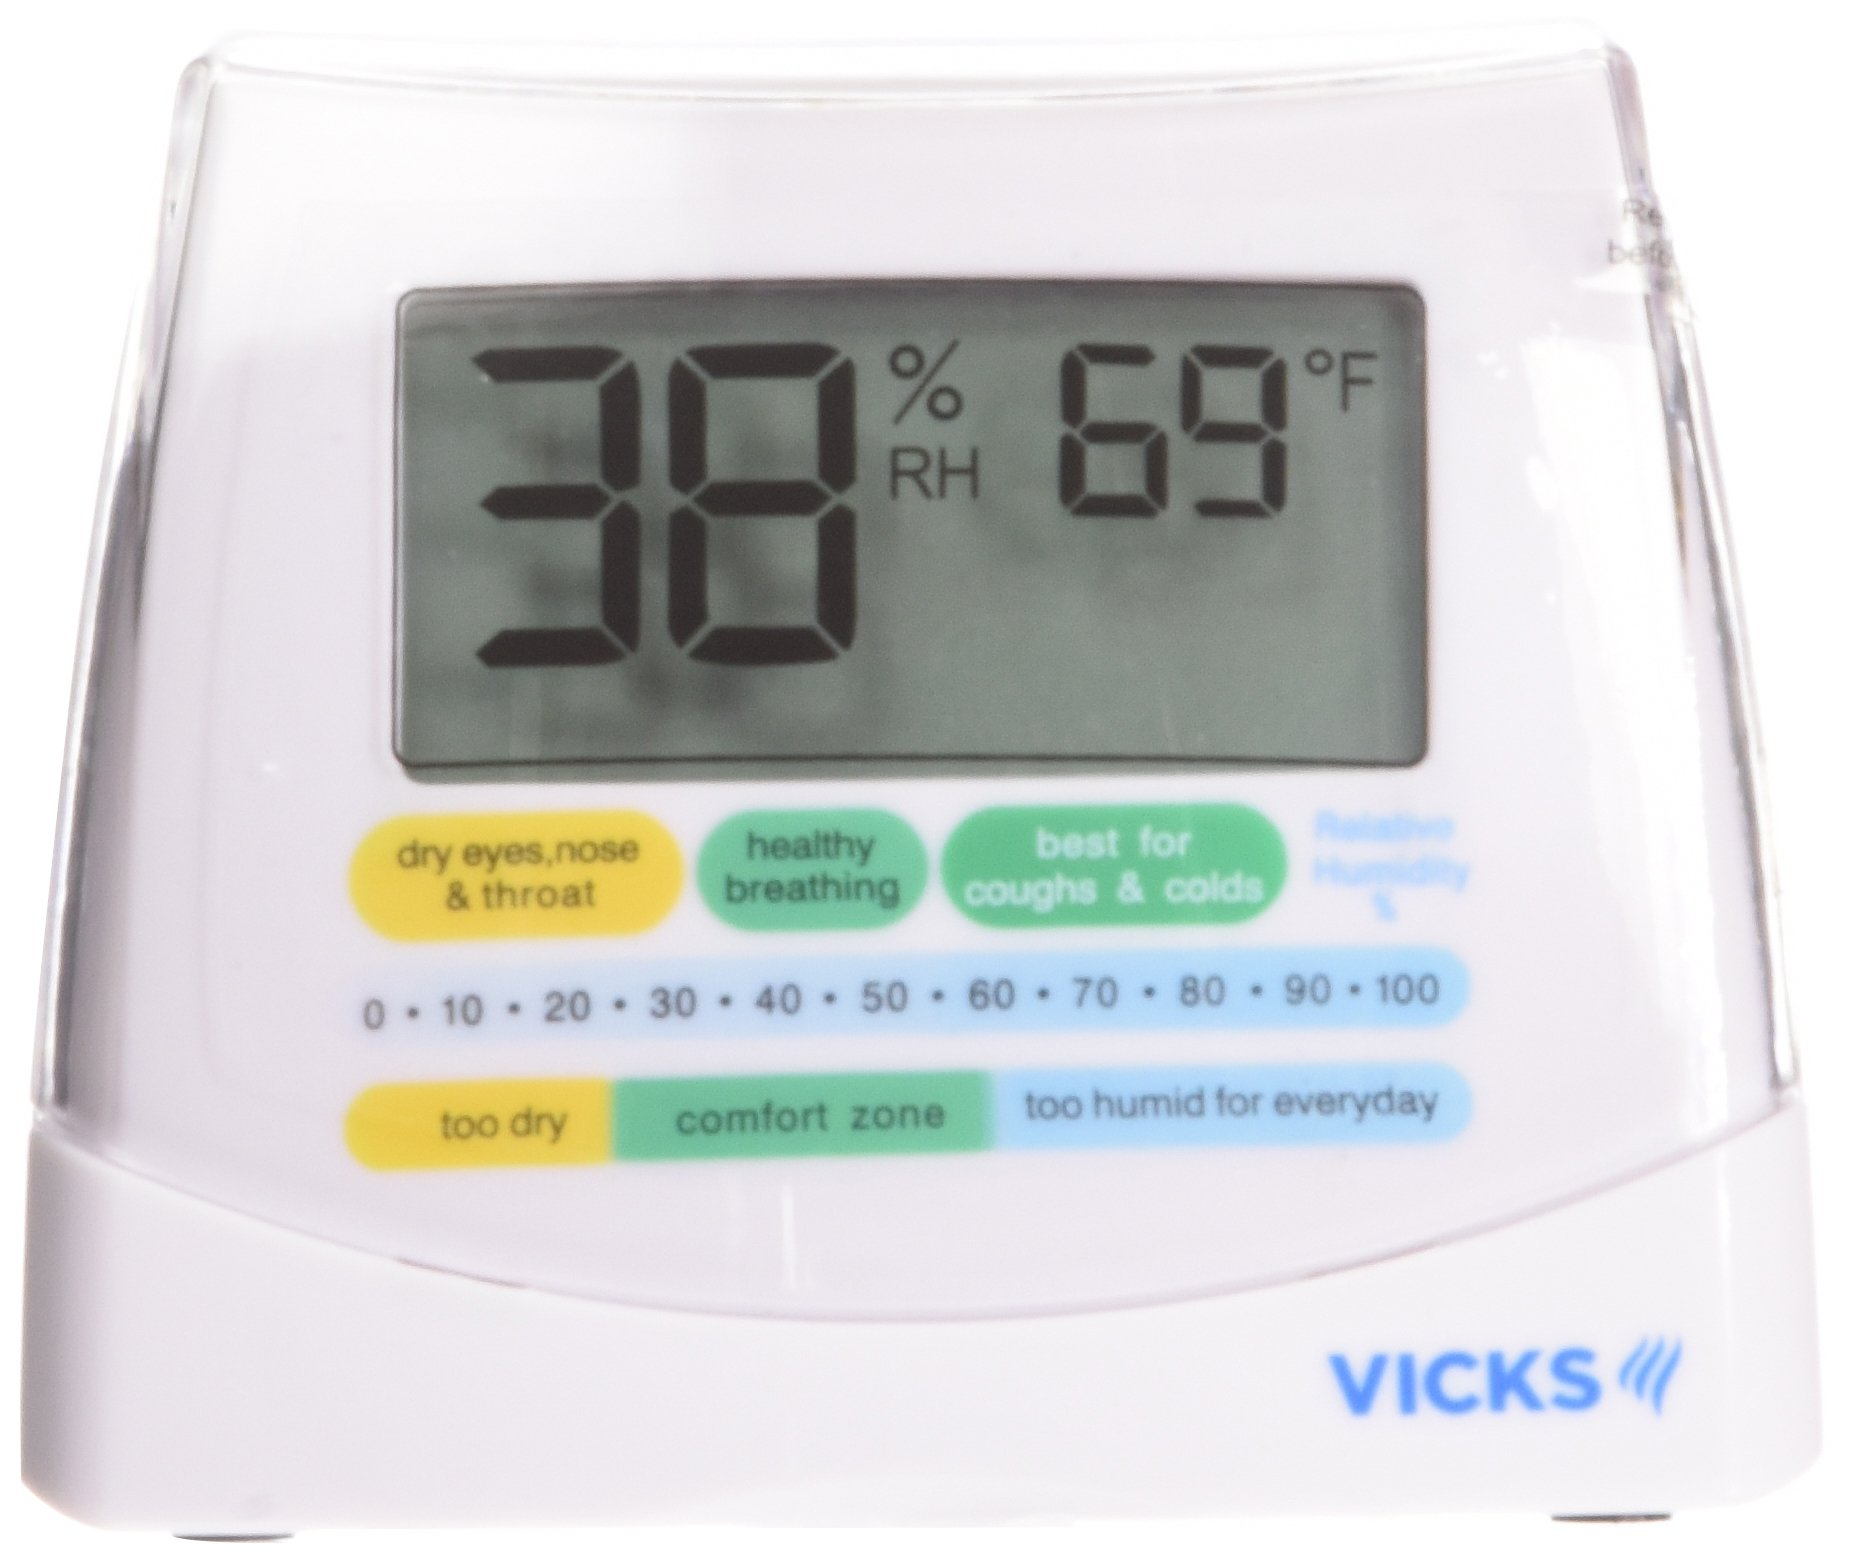 Vicks Humidity Monitor Helps You Keep Moisture at Ideal Levels by Vicks